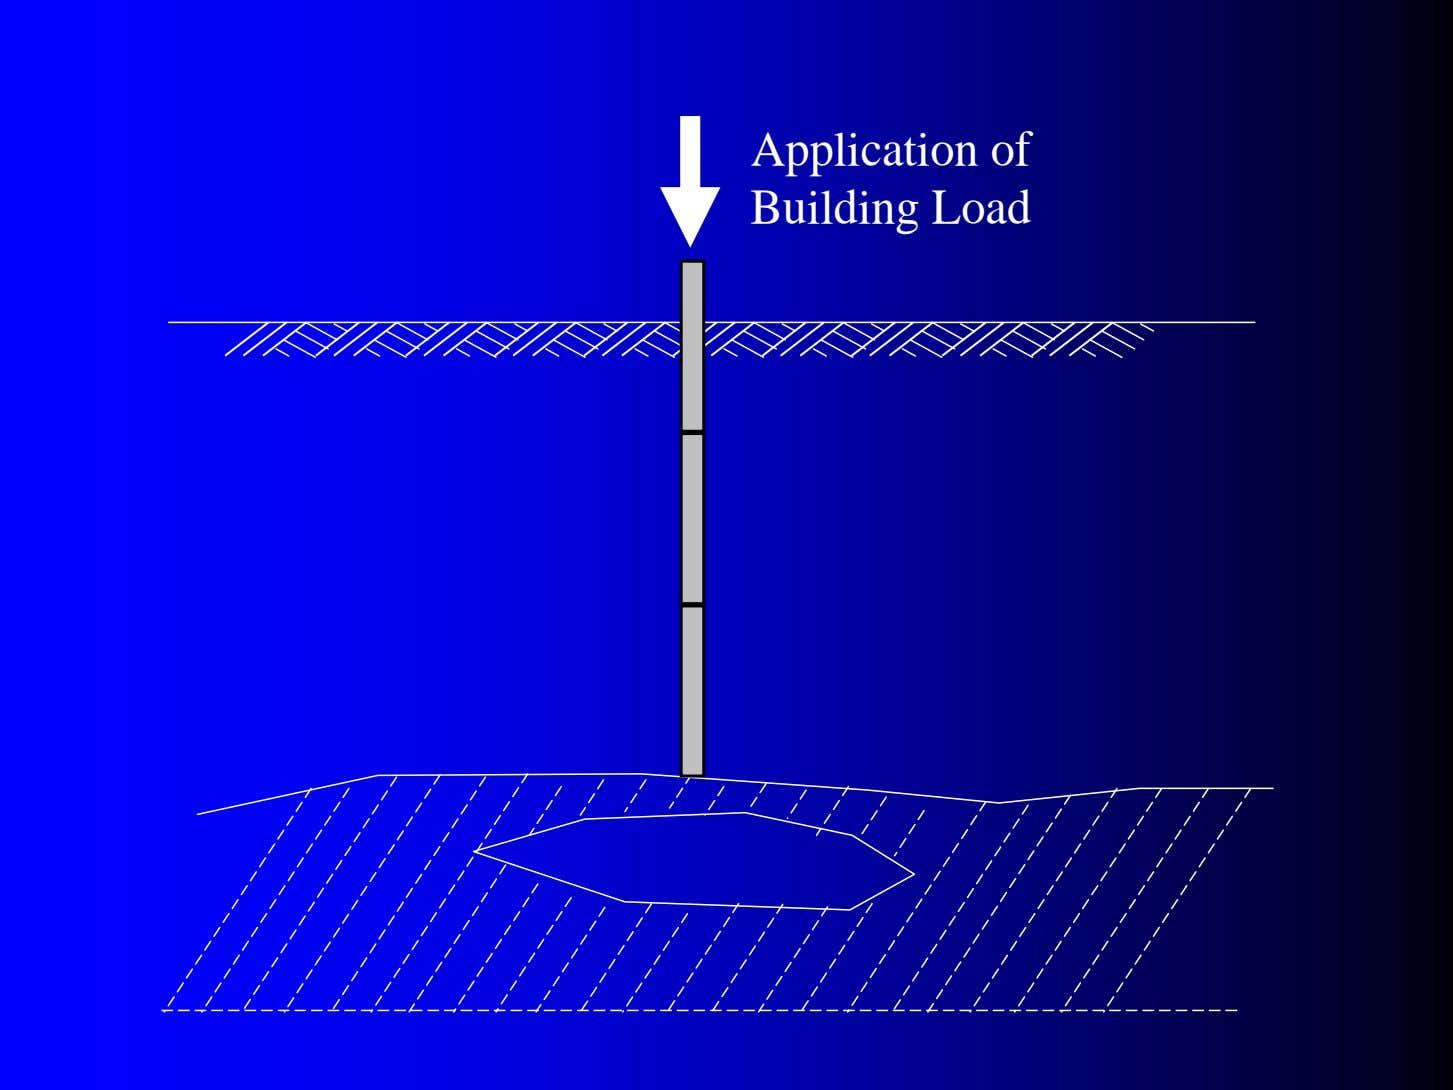 Application of Building Load